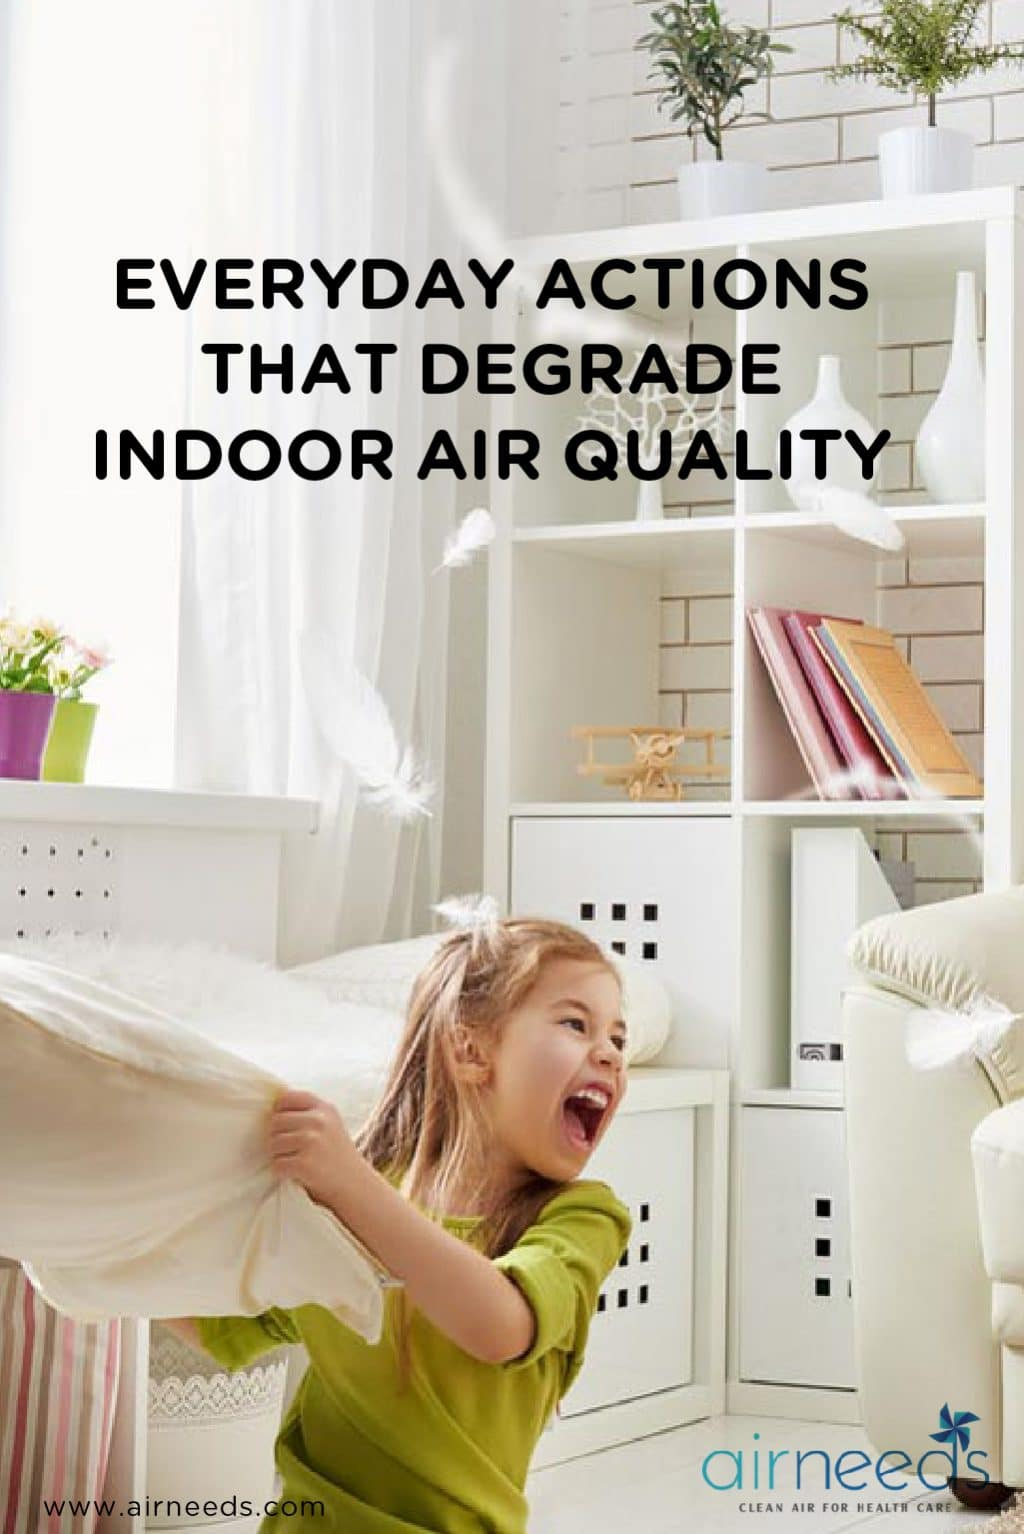 Everyday actions that degrade indoor air quality